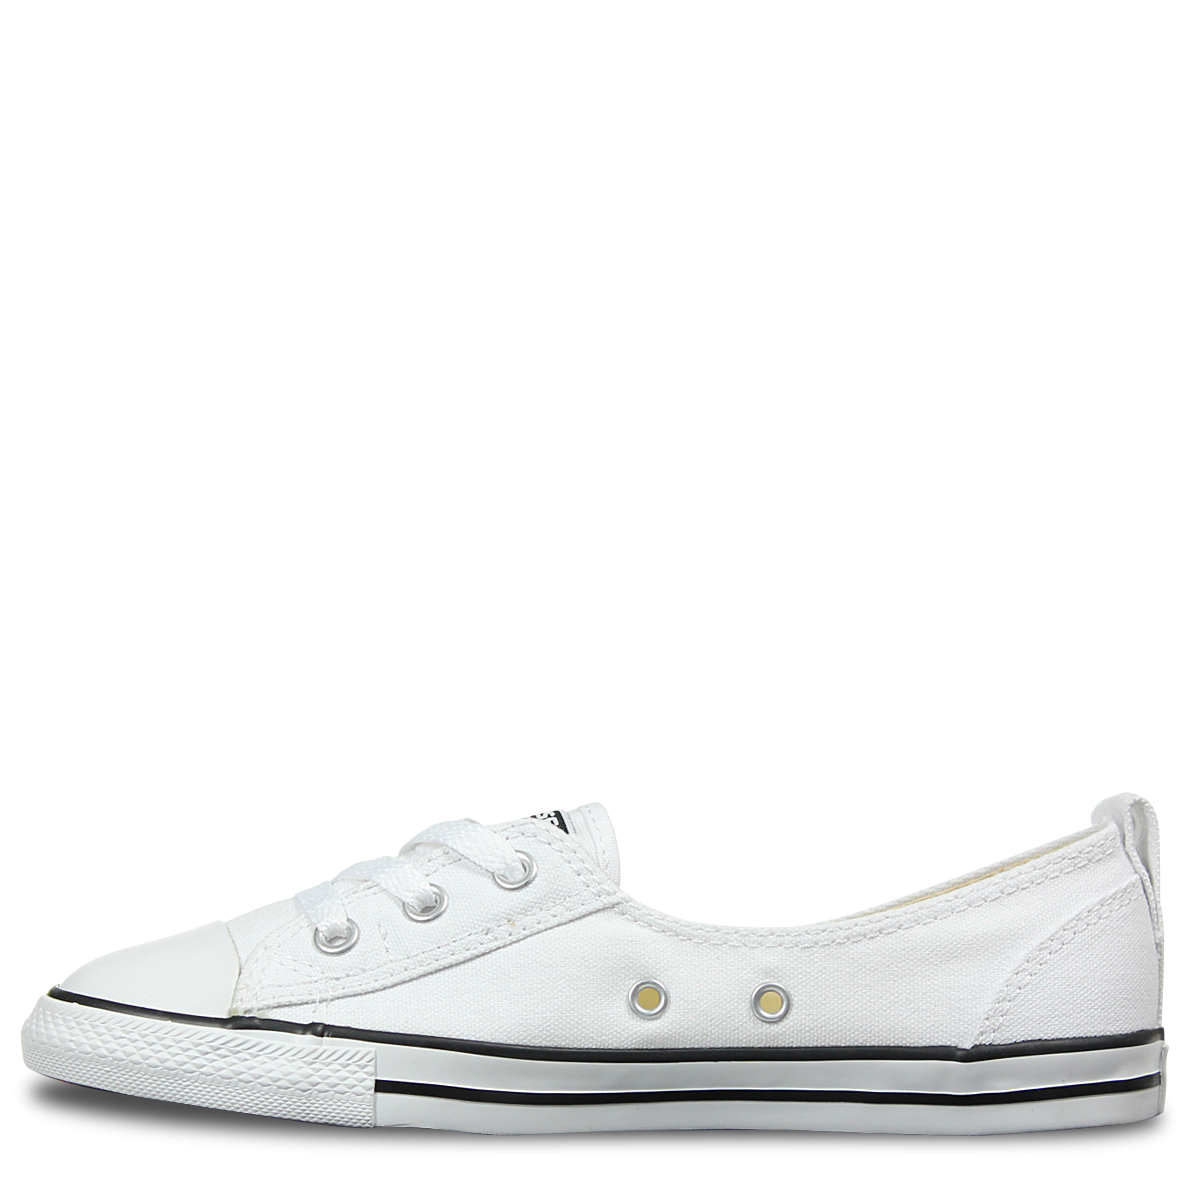 Chuck Taylor All Star Dainty Ballet Low Top White | Converse Australia